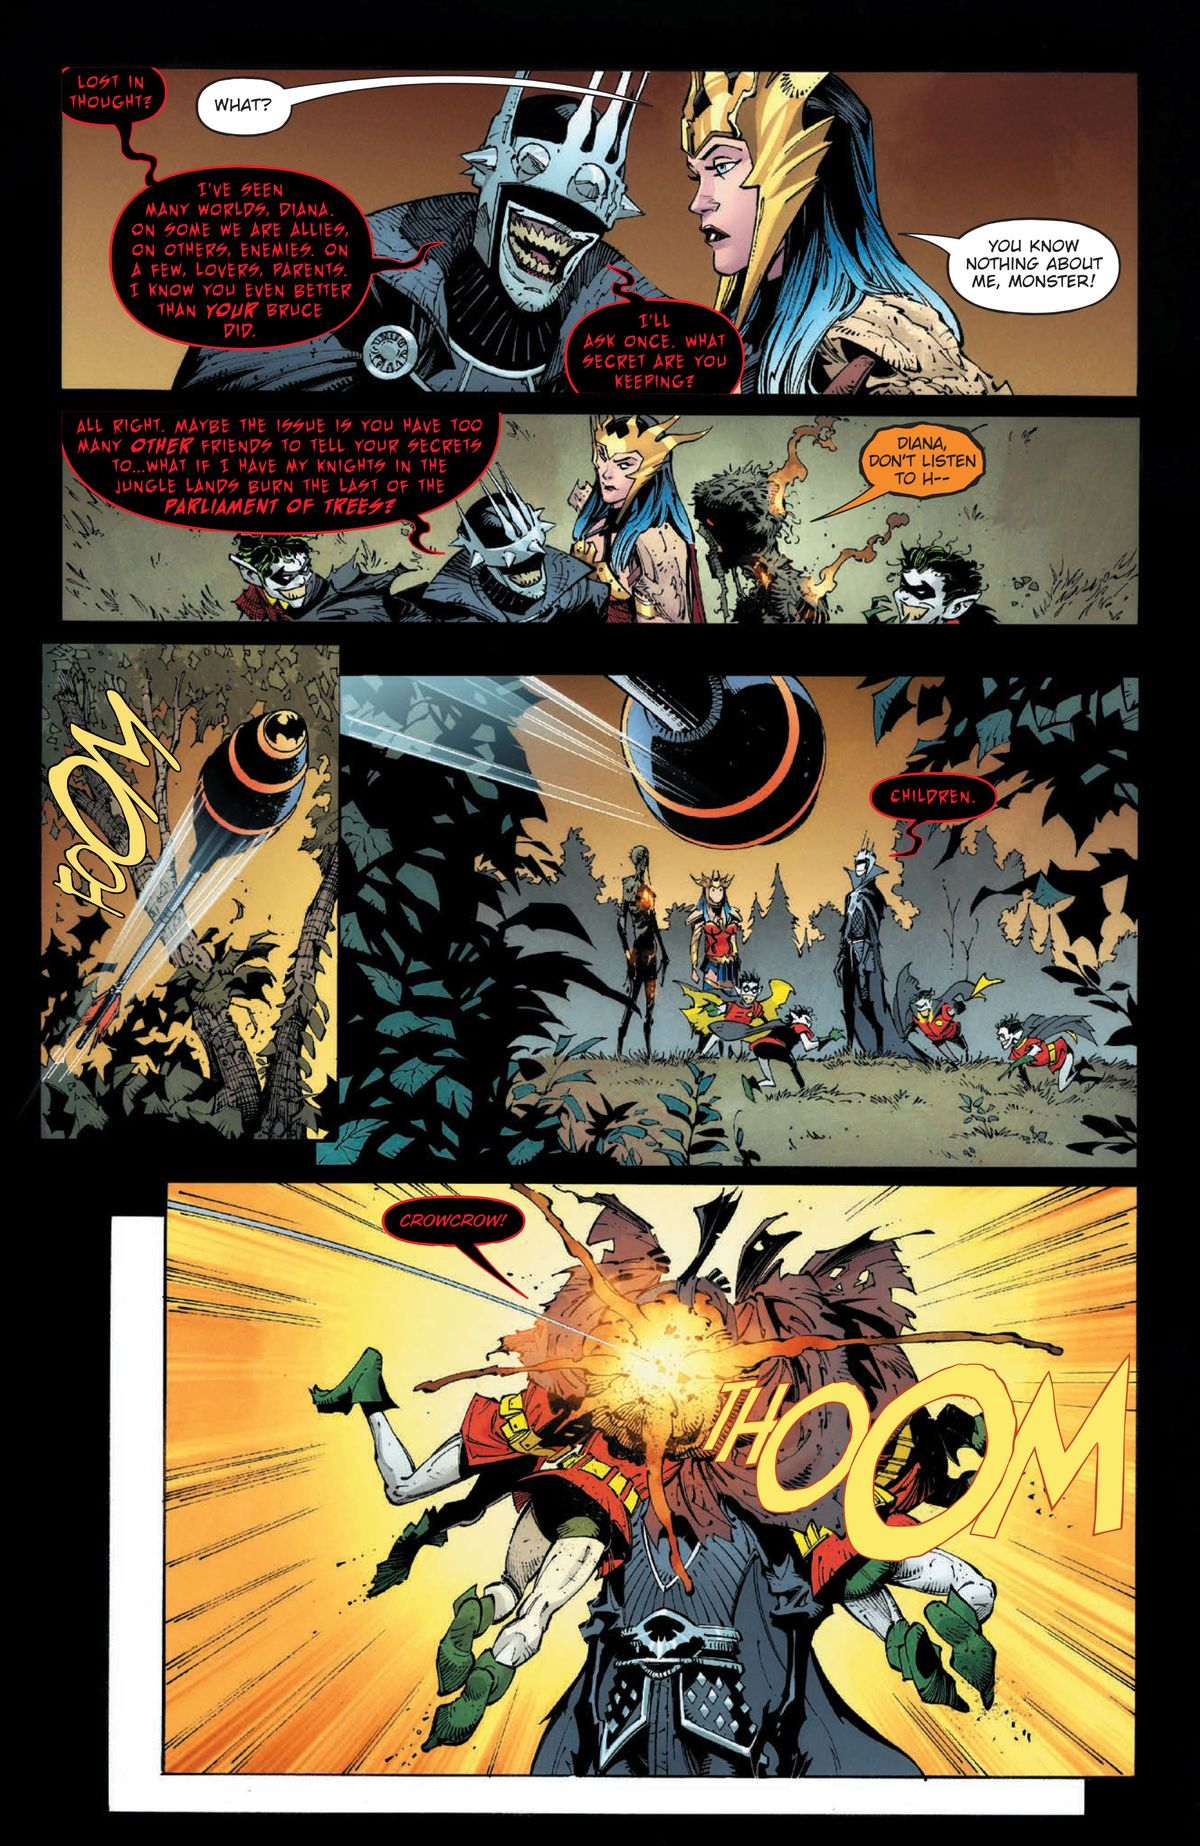 The Batman Who Laughs questions Wonder Woman just before he is fired upon by somebody with a bat-explosive-arrow, in Dark Nights: Death Metal #1, DC Comics (2020).